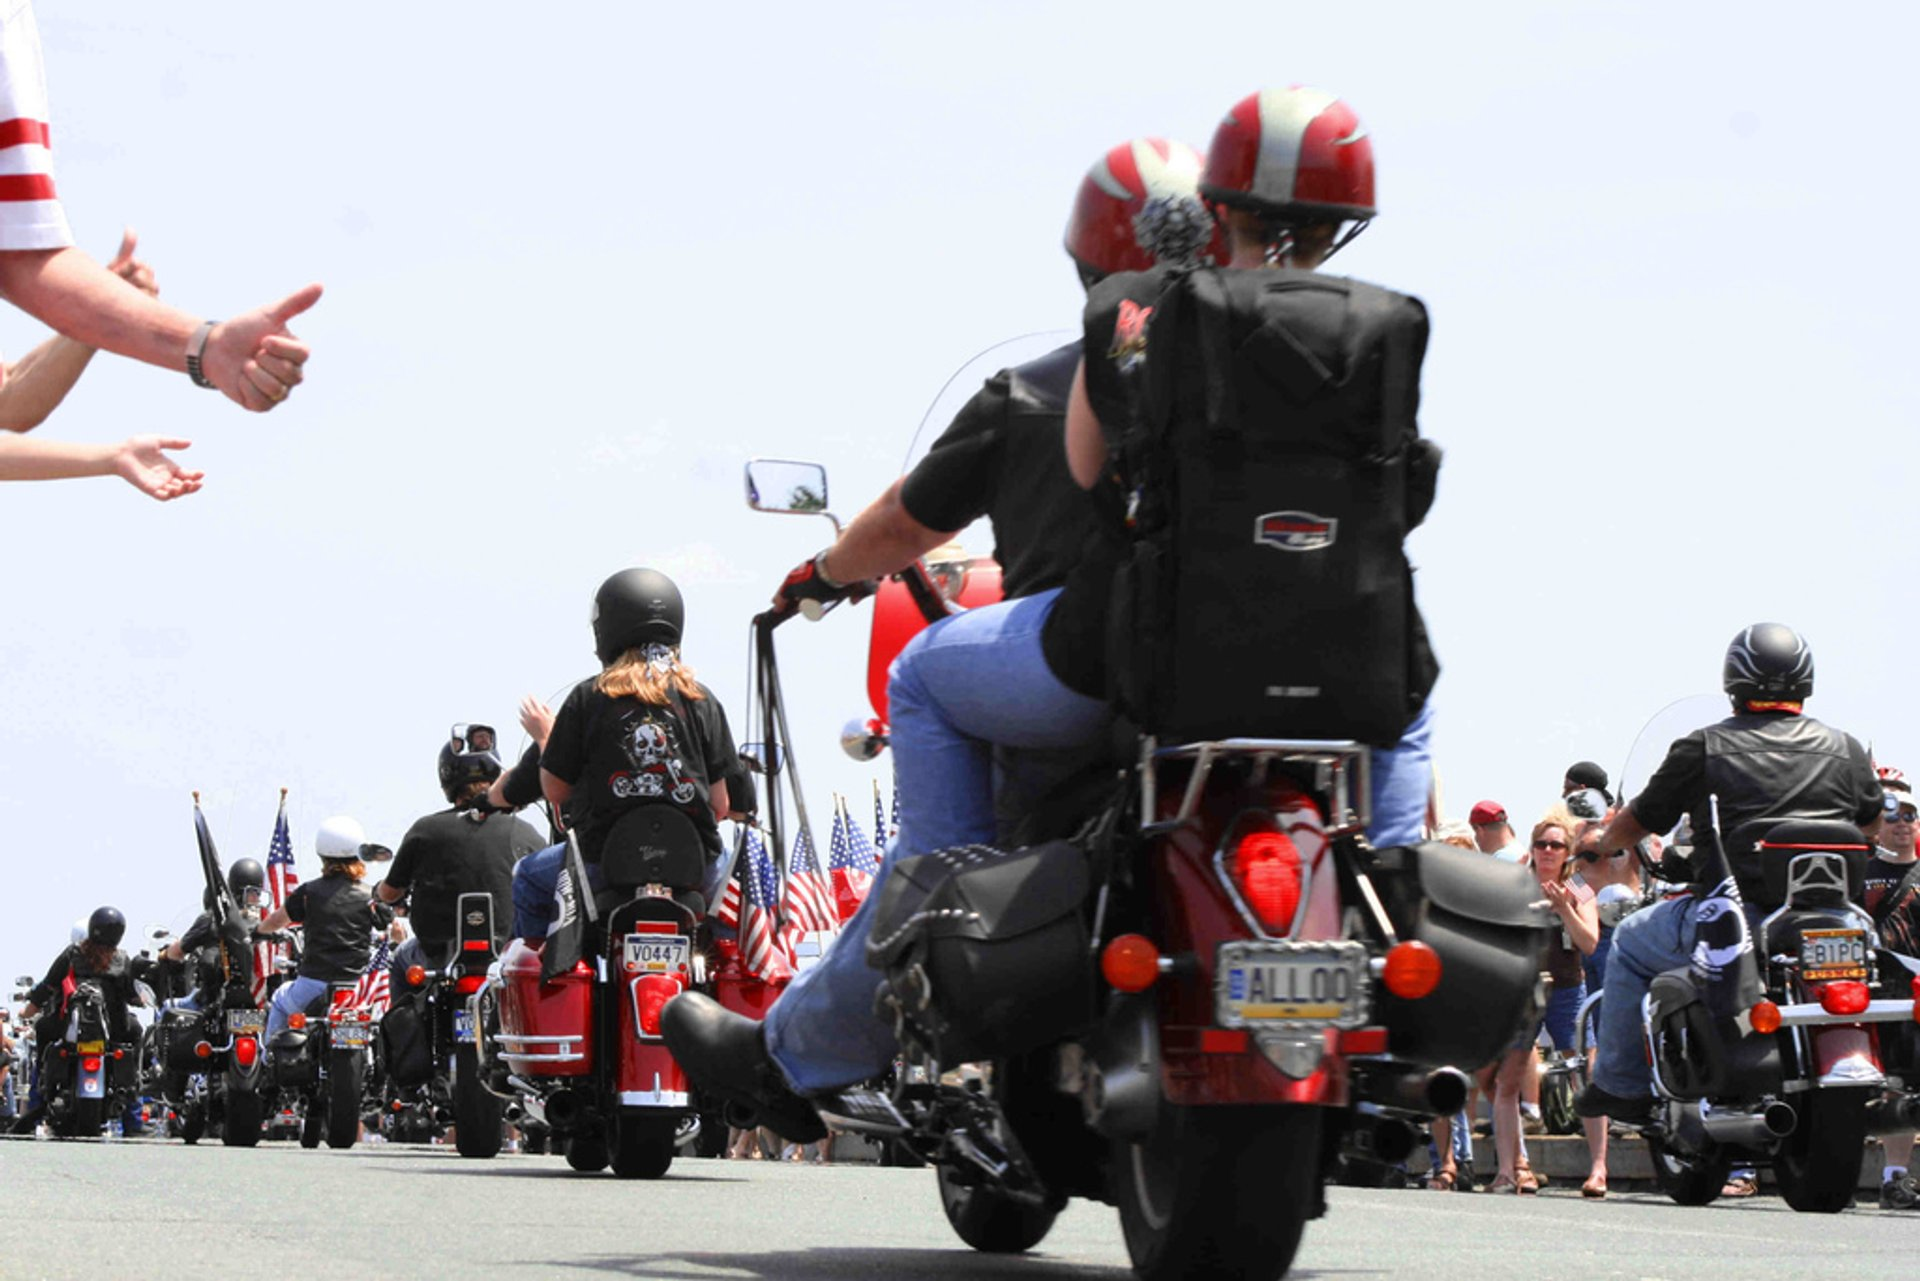 Best time to see Rolling Thunder 'Ride for Freedom' in Washington, D.C.